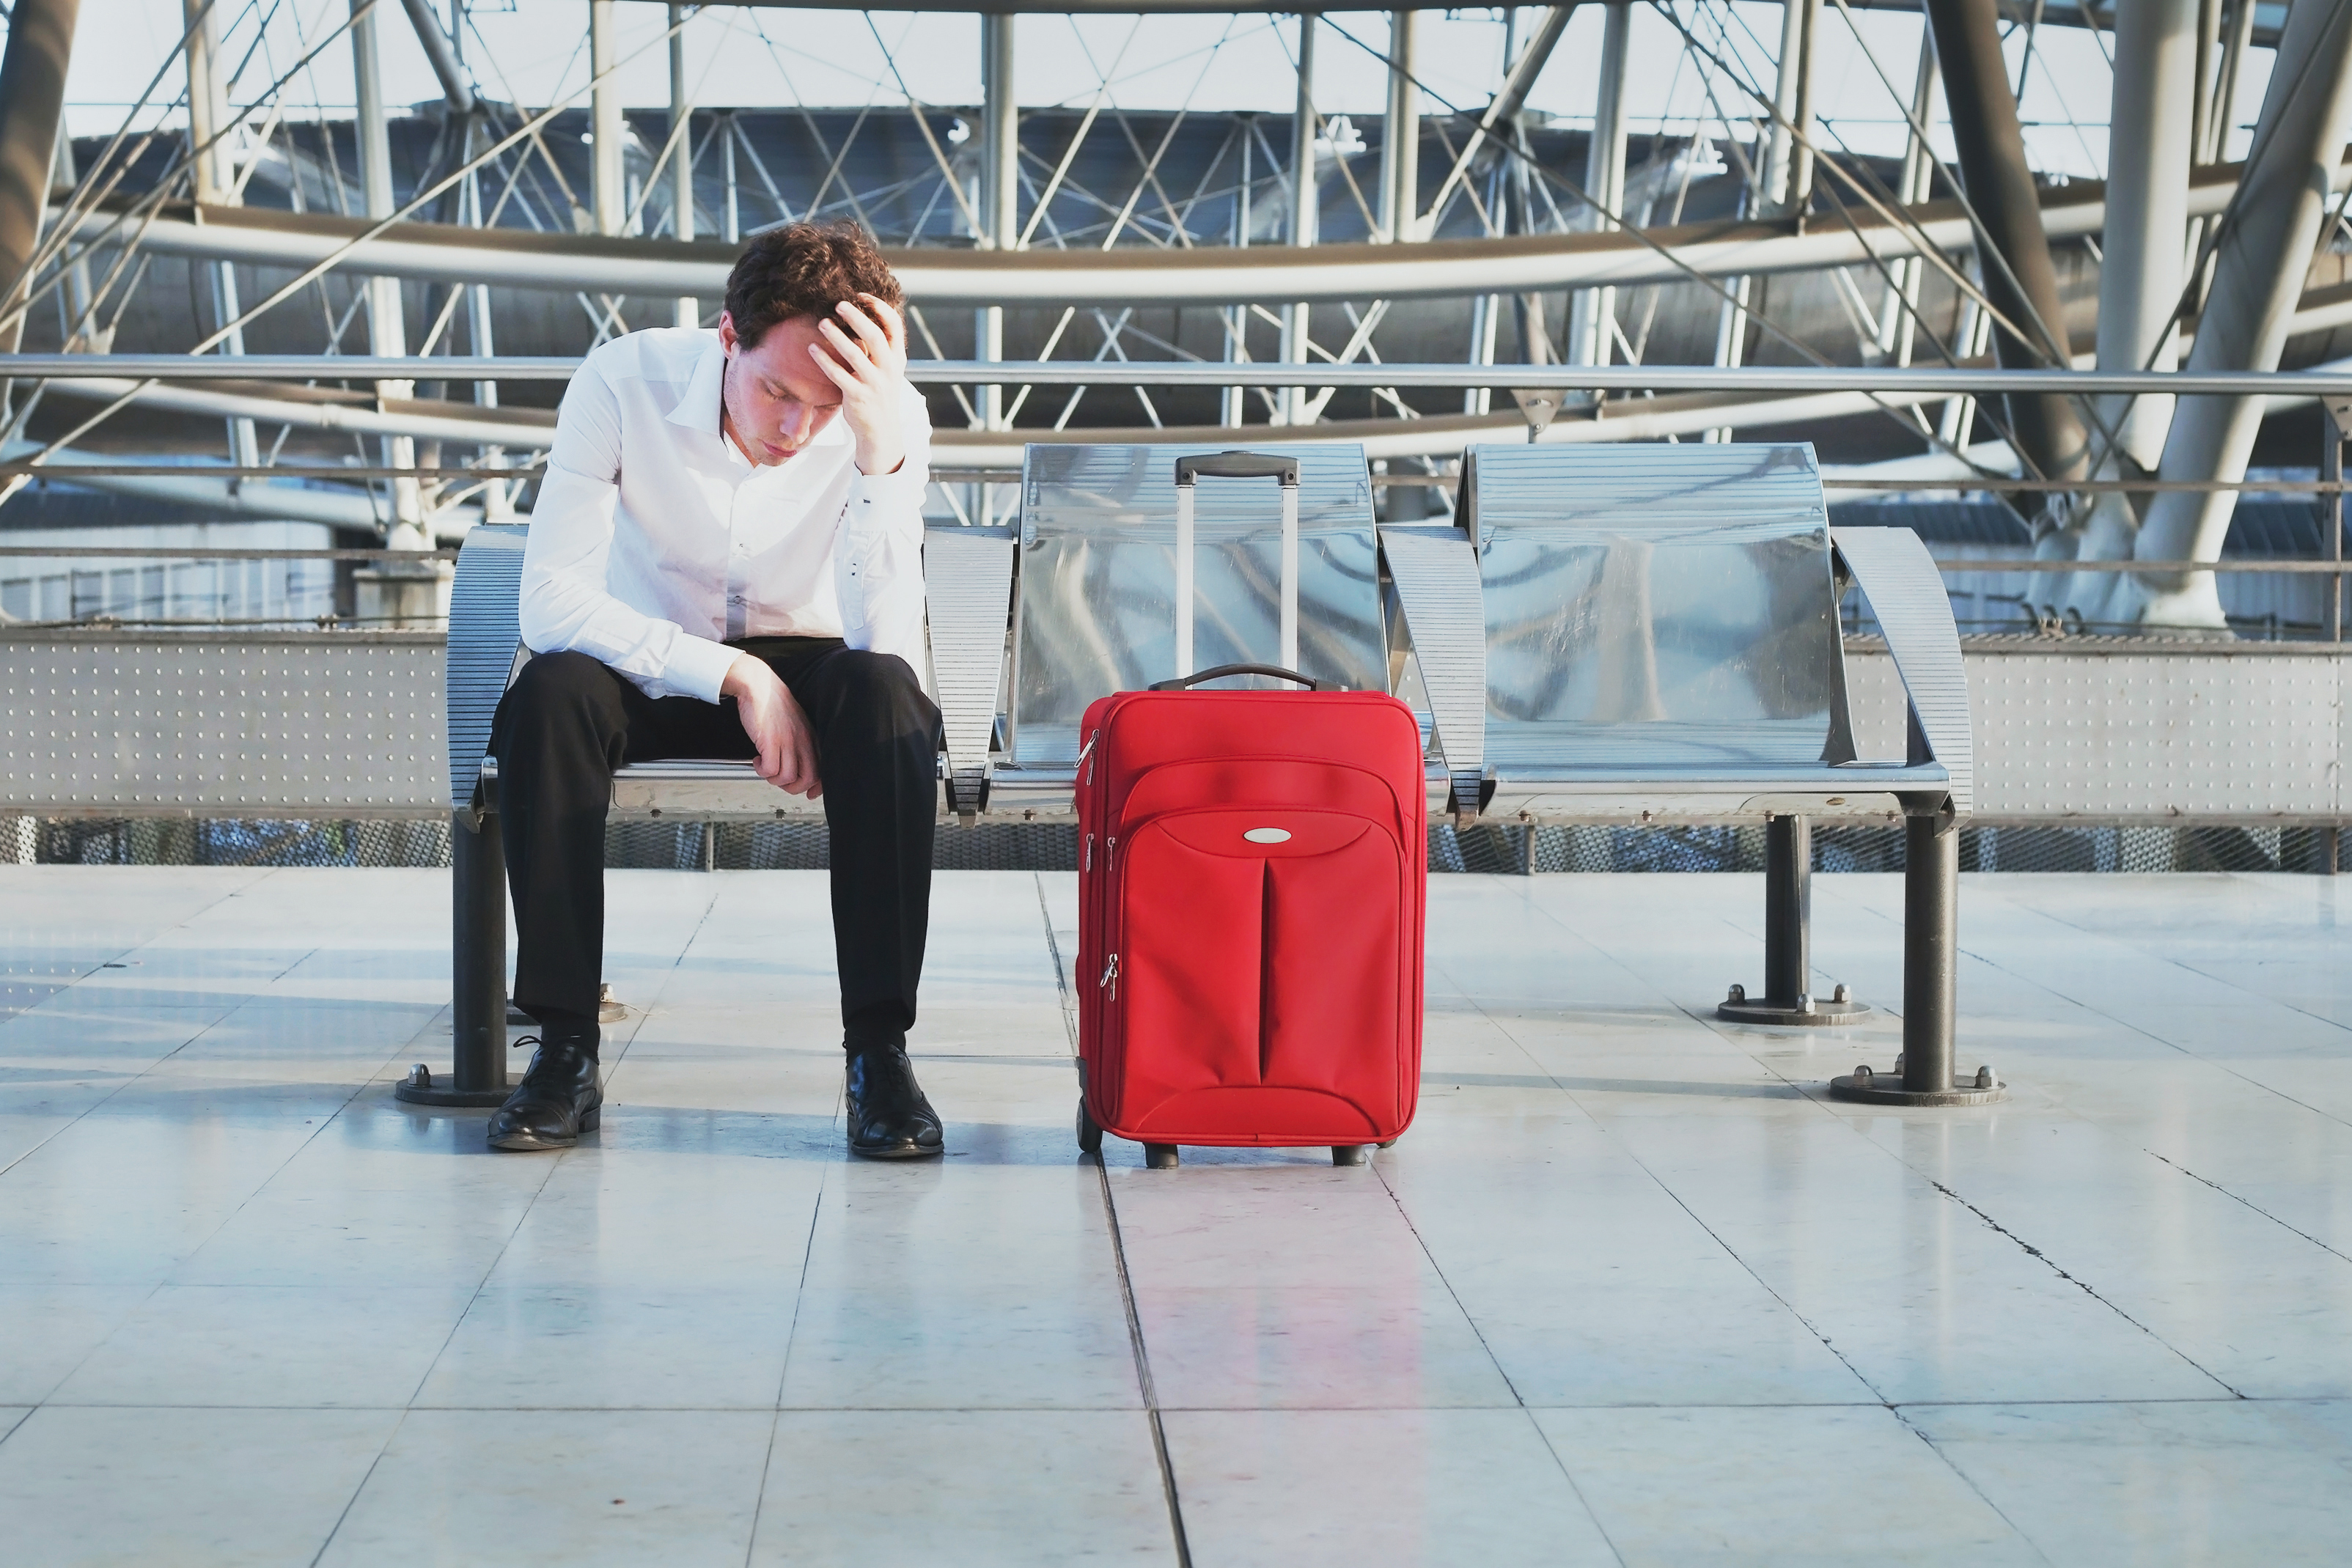 flight delay or problem in the airport, tired desperate passenger waiting in the terminal